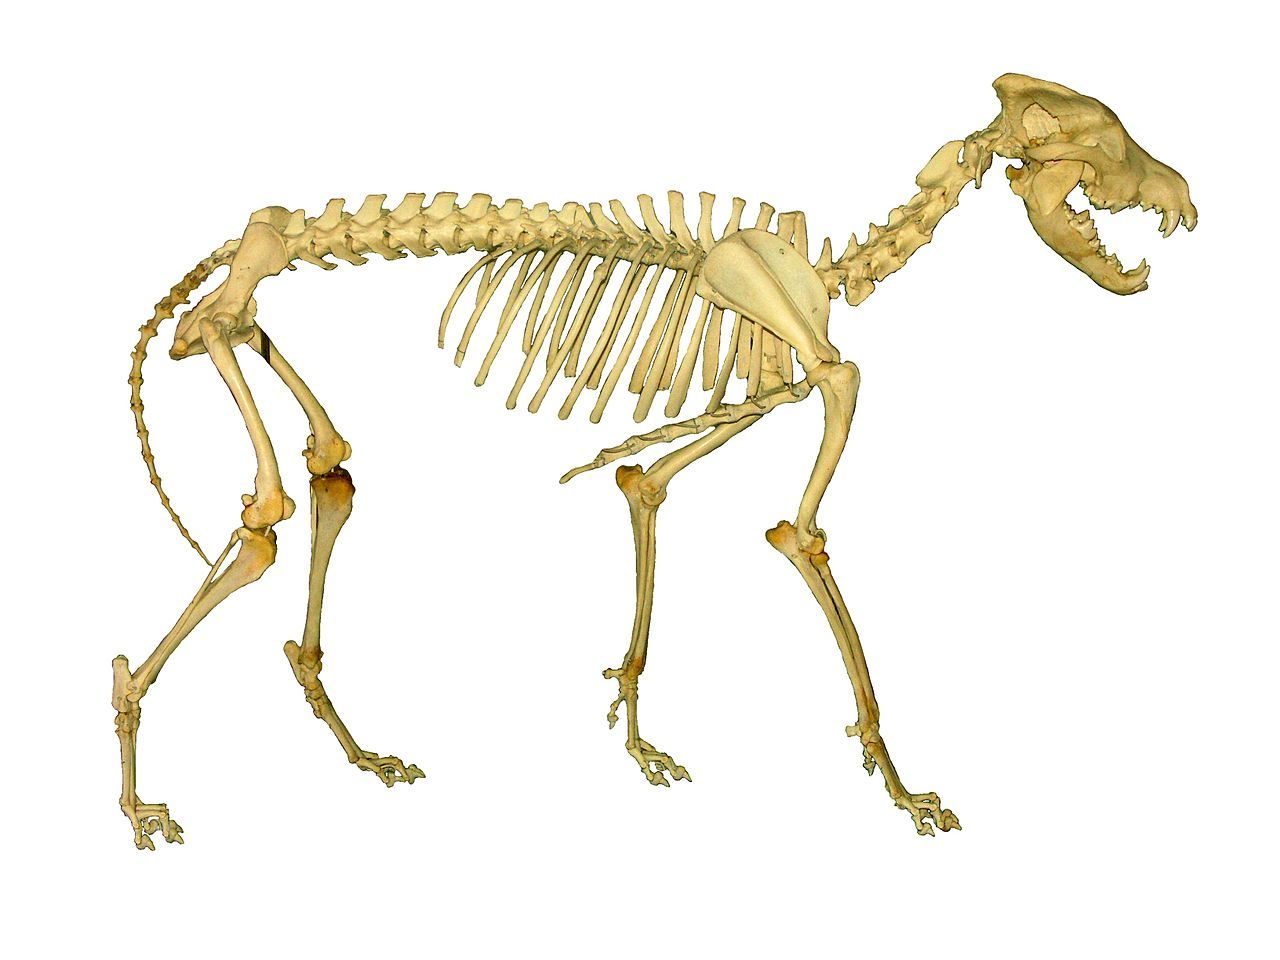 Pin by Elliot Rosenstein on Anatomy - animal - canidae | Pinterest ...